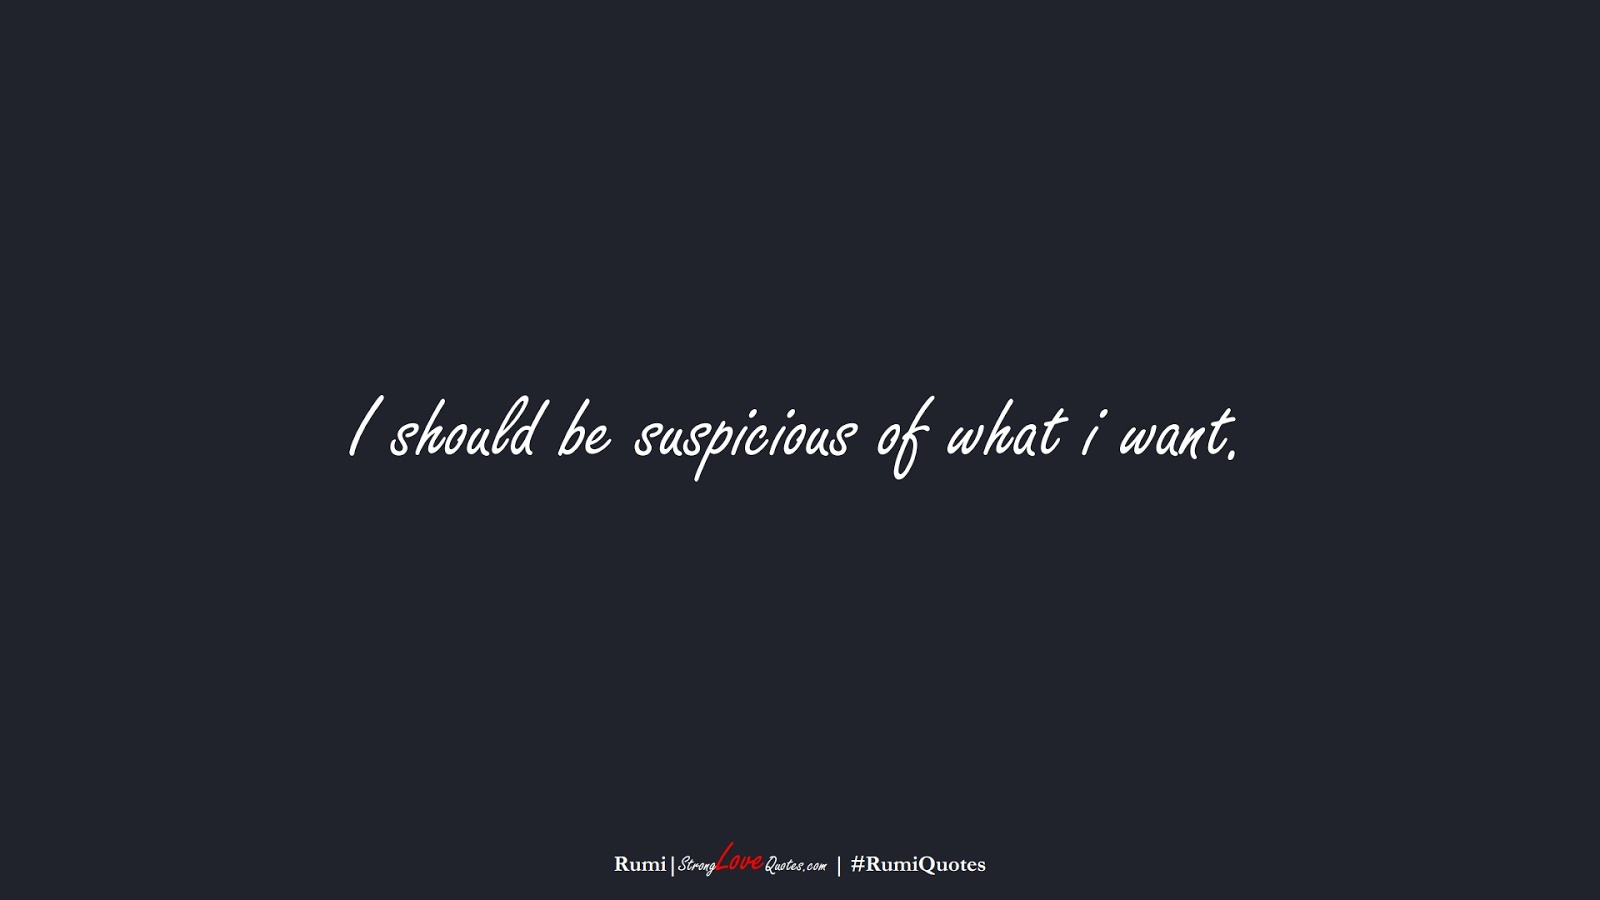 I should be suspicious of what i want. (Rumi);  #RumiQuotes